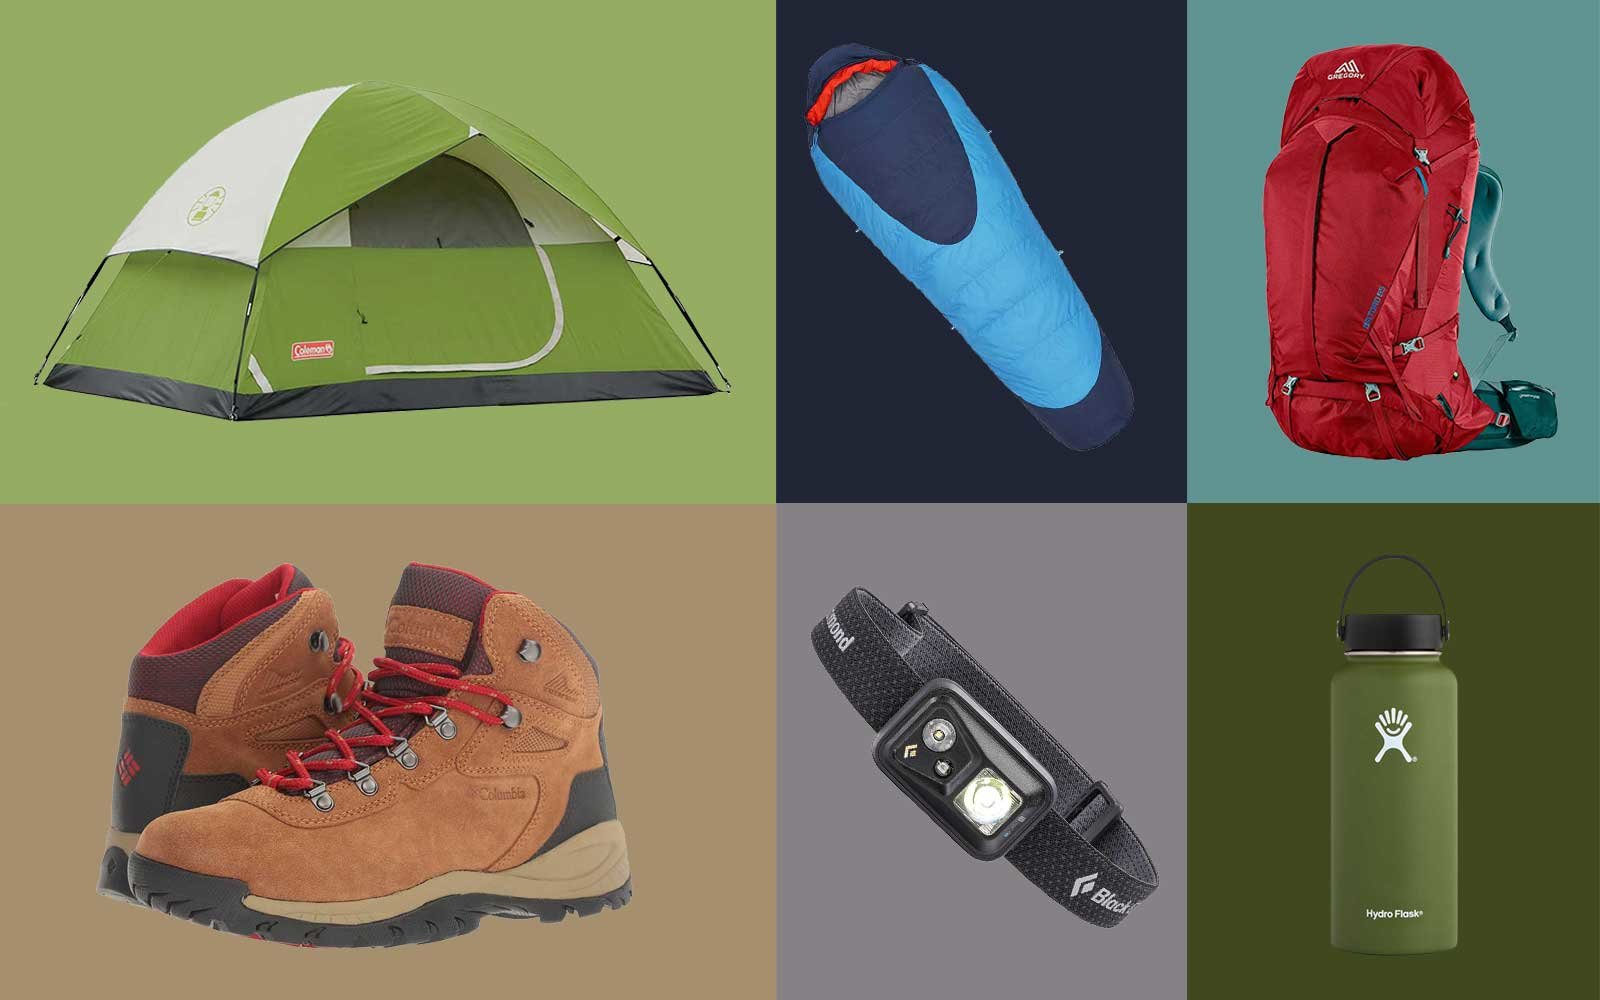 best camping hiking gear on amazon